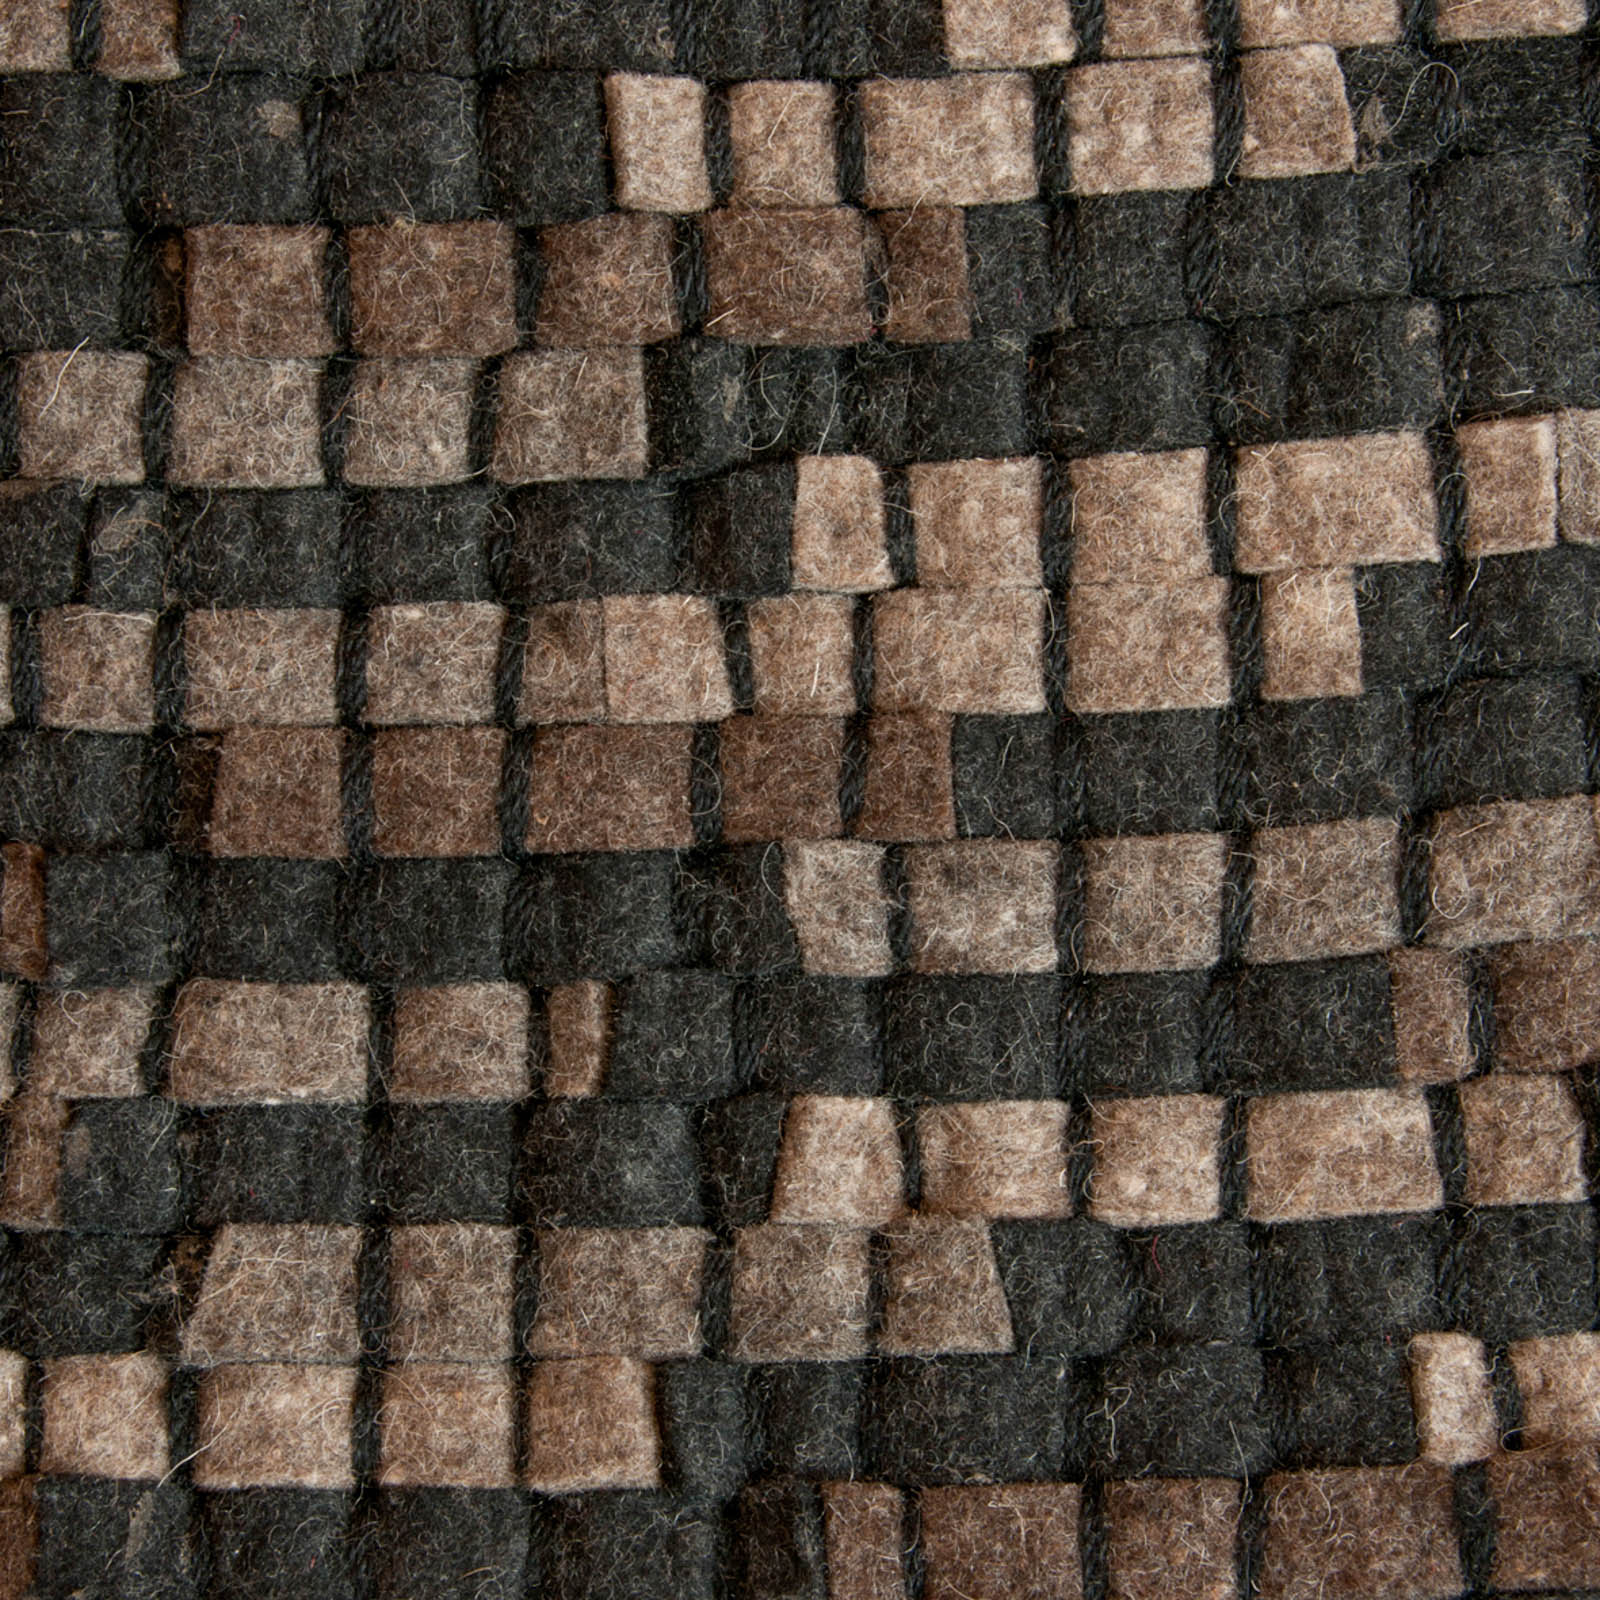 Stone Rugs 900 in Brown and Black